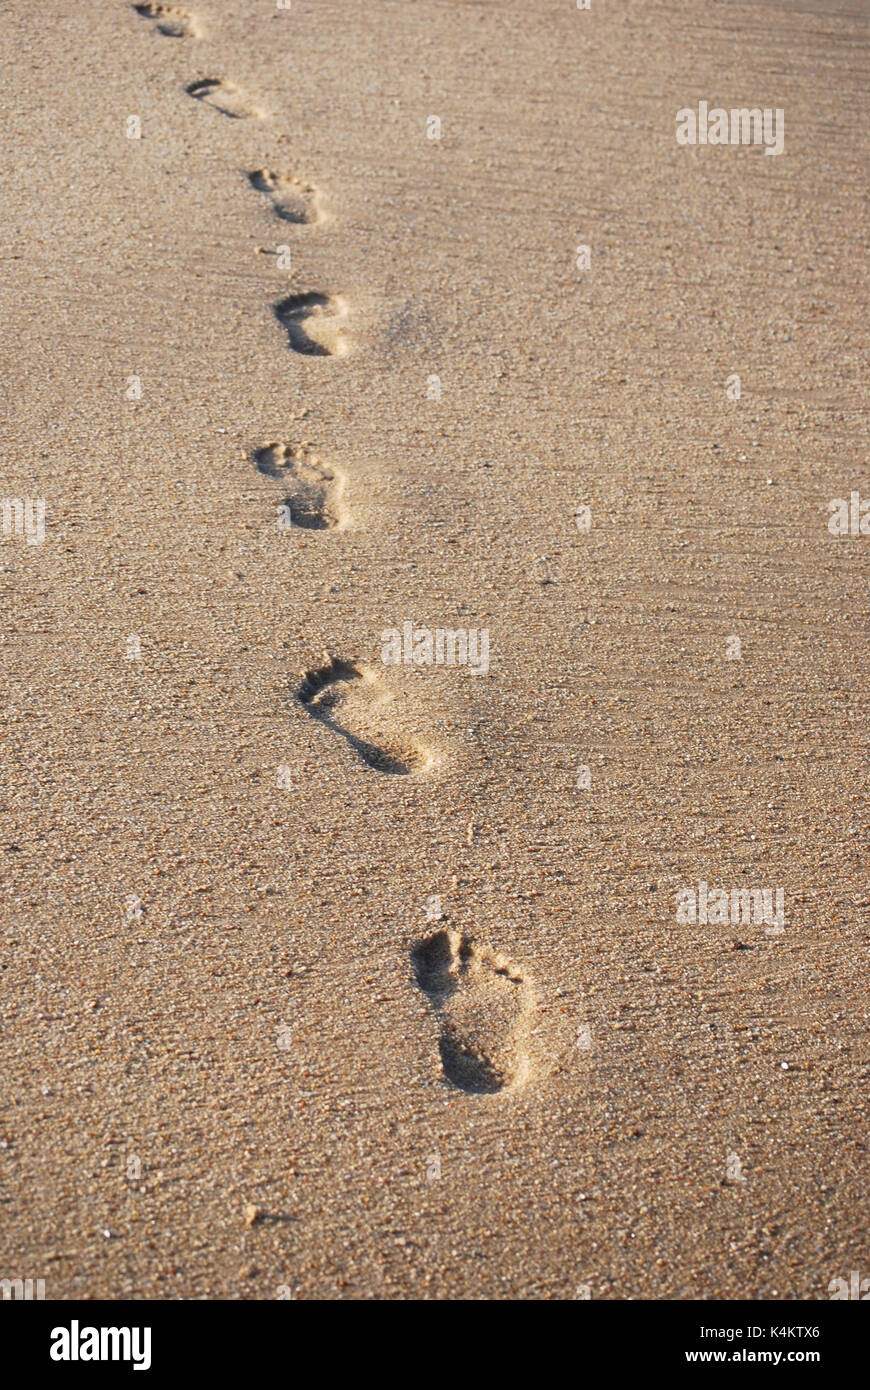 how to create footsteps on sand